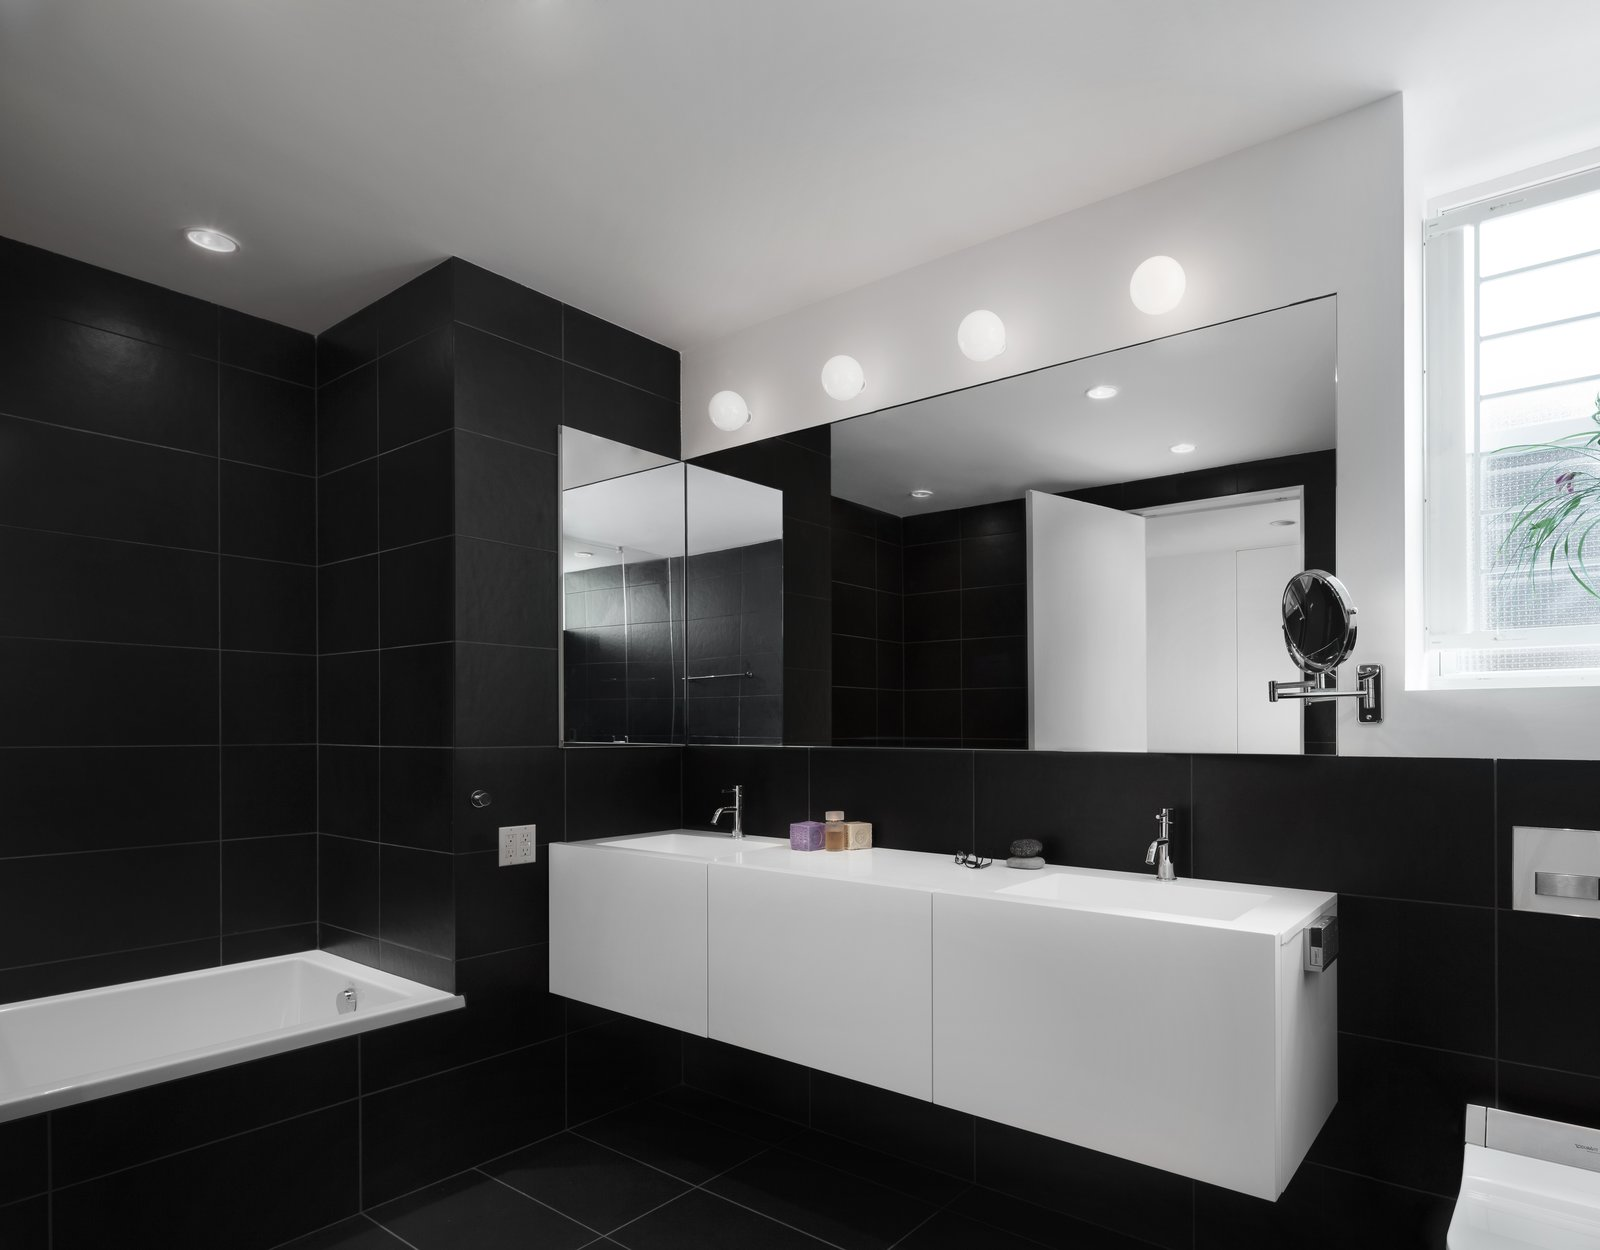 Bath Room and Wall Lighting The bathrooms feature a monochrome aesthetic.   Spring Street Loft by Verona Carpenter Architects